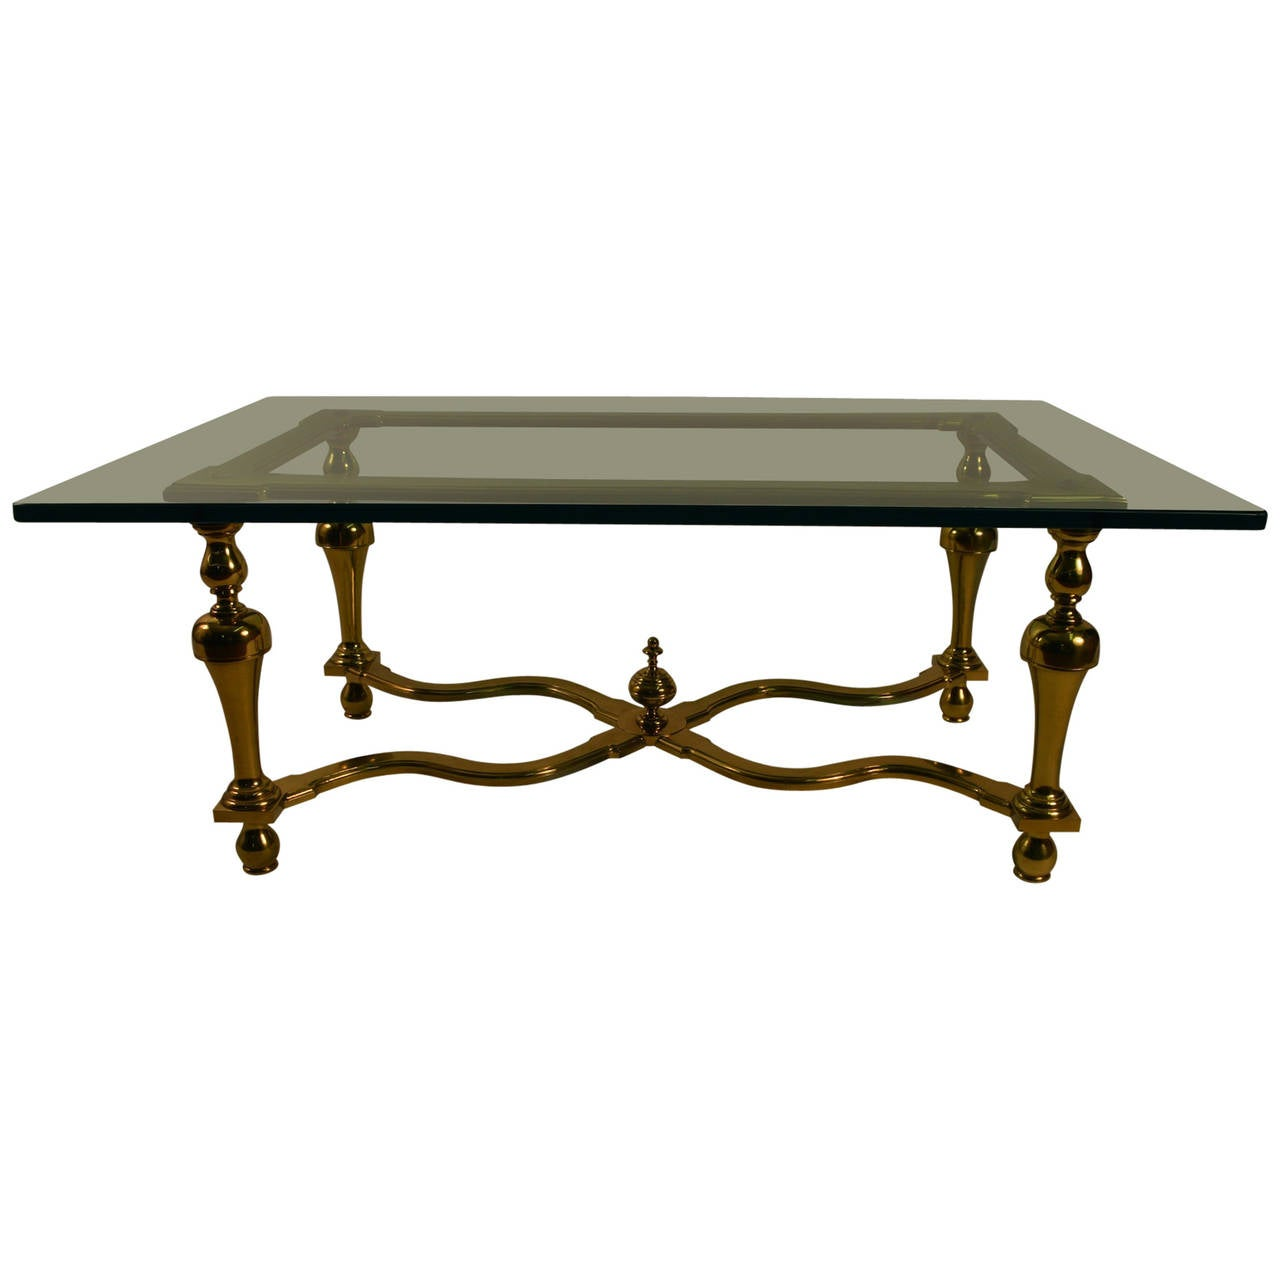 Brass and glass coffee or cocktail table for sale at 1stdibs for Glass coffee tables for sale